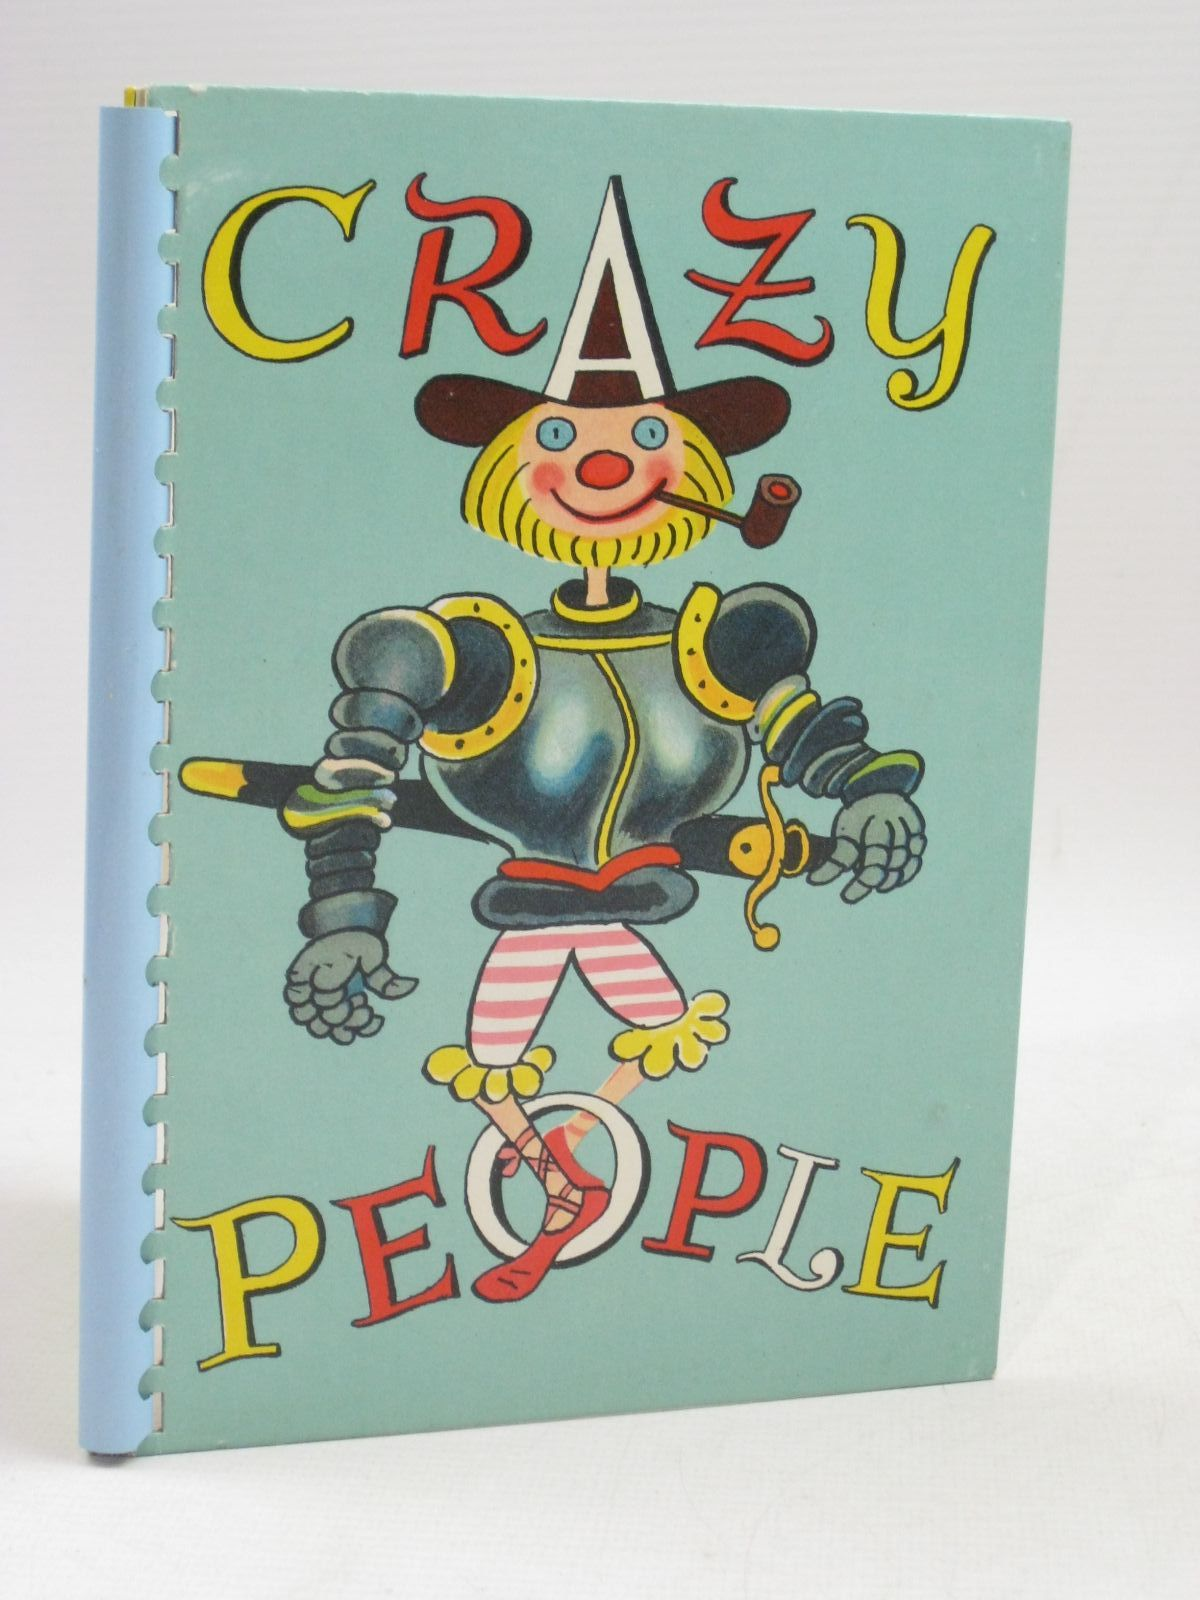 Photo of 8192 CRAZY PEOPLE illustrated by Trier, Walter published by Atrium Press Ltd. (STOCK CODE: 1405321)  for sale by Stella & Rose's Books